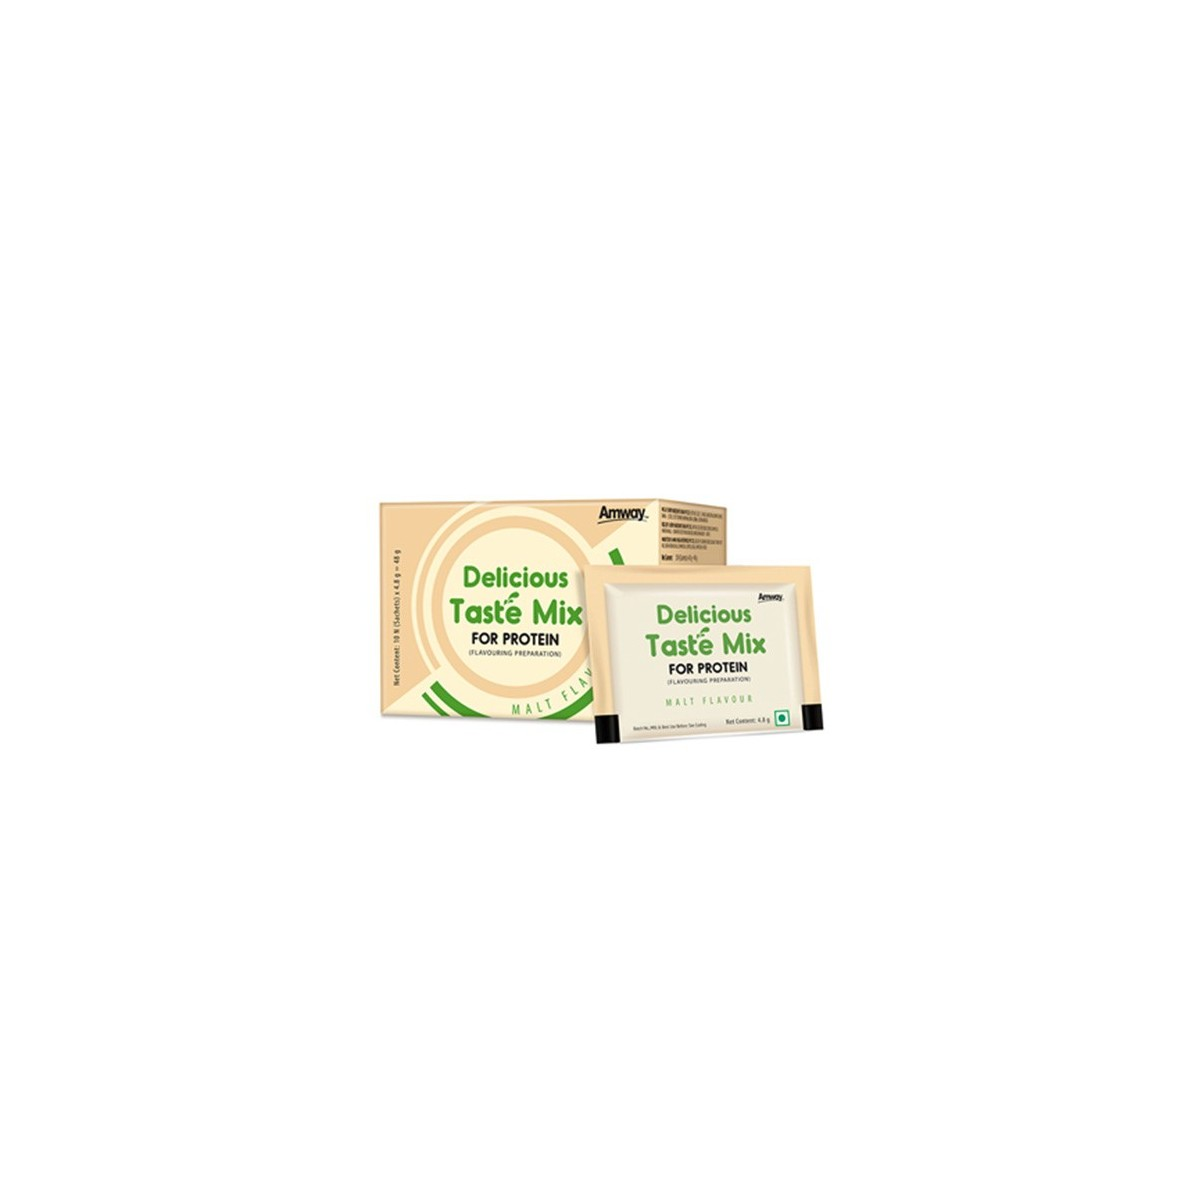 Amway Delicious Taste Mix for Protein(Malt Flavour)